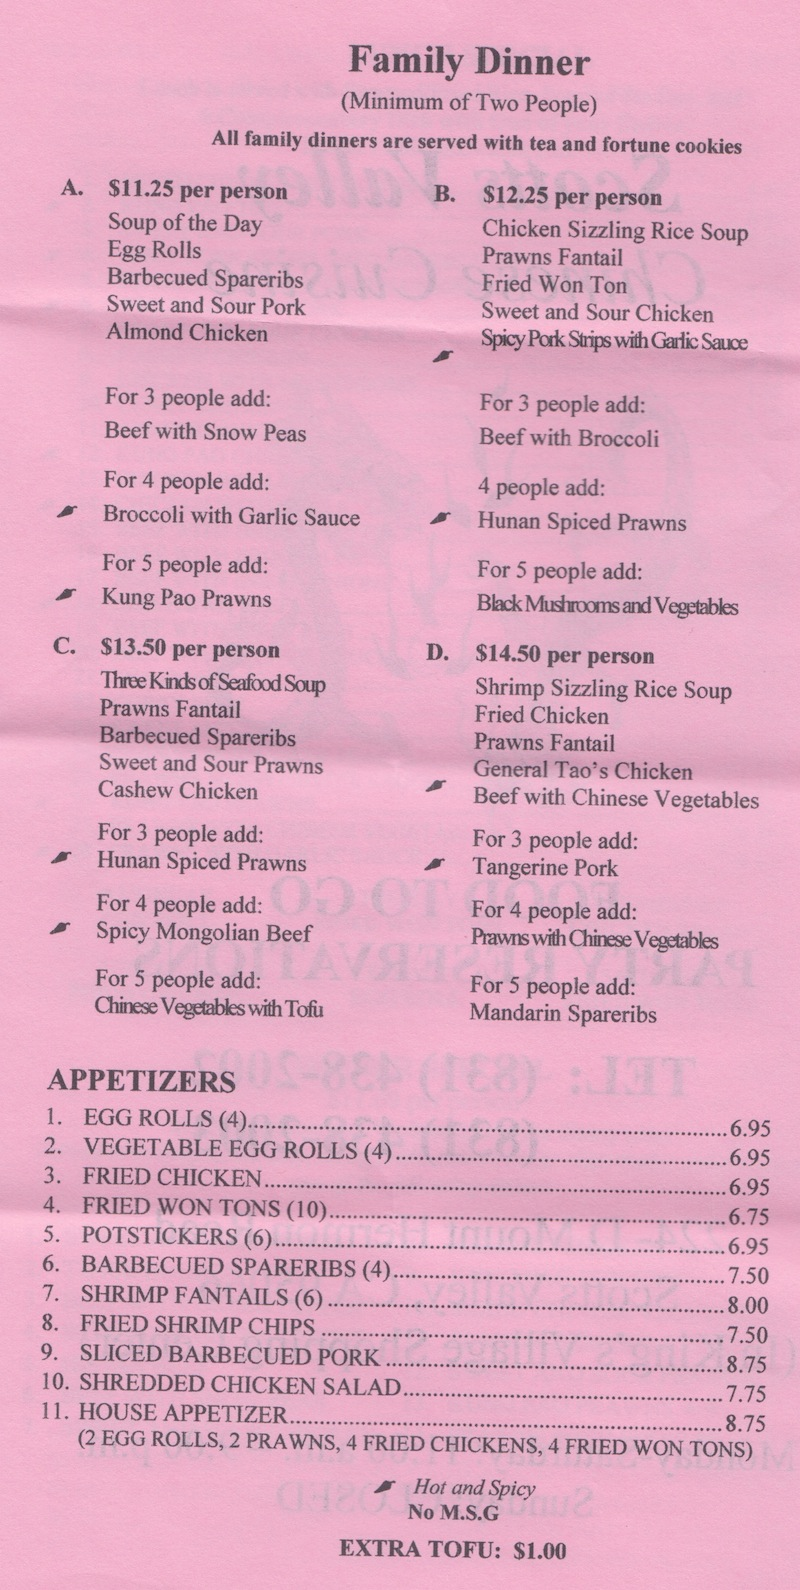 Scotts Valley Chinese Cuisine Menu - Family Dinner/Appetizers